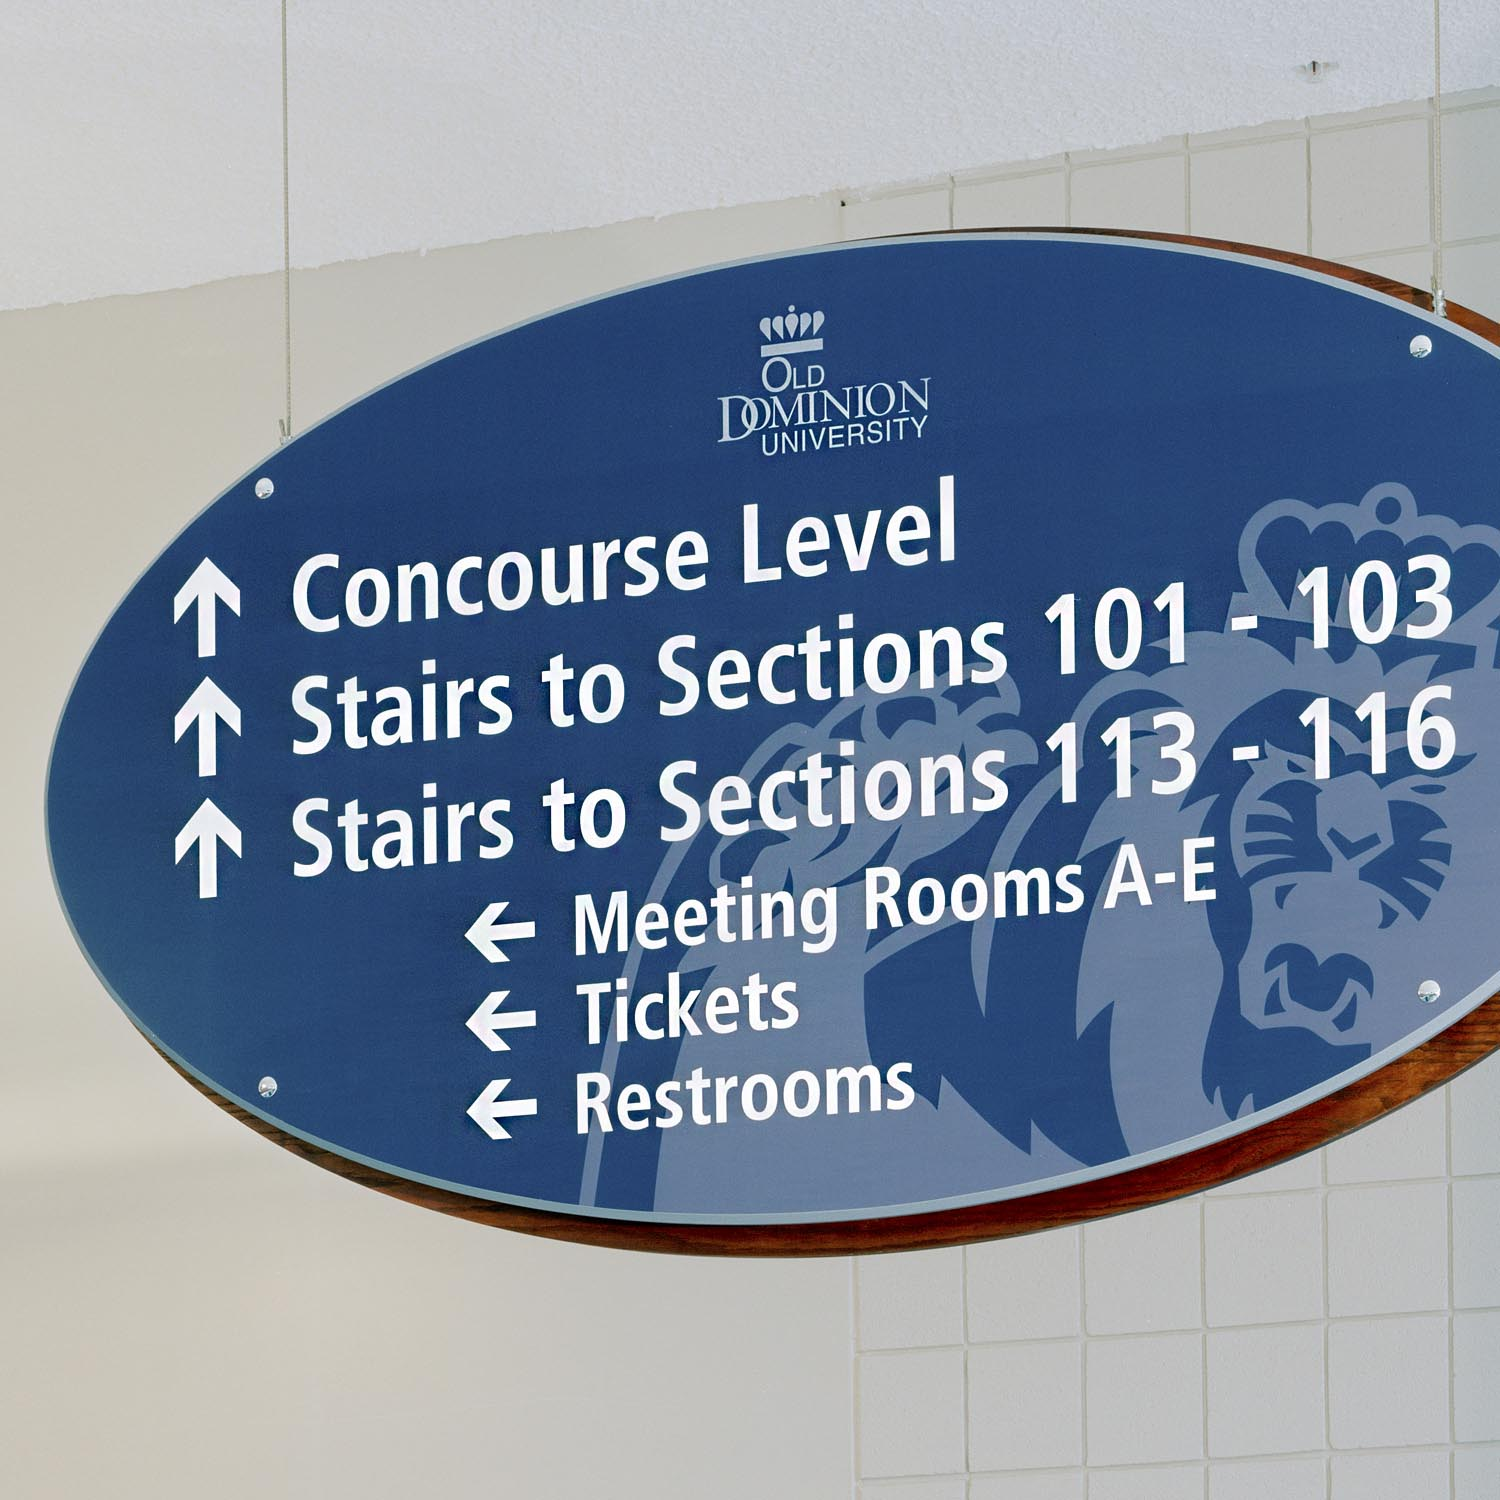 old dominion university wayfinding.jpg